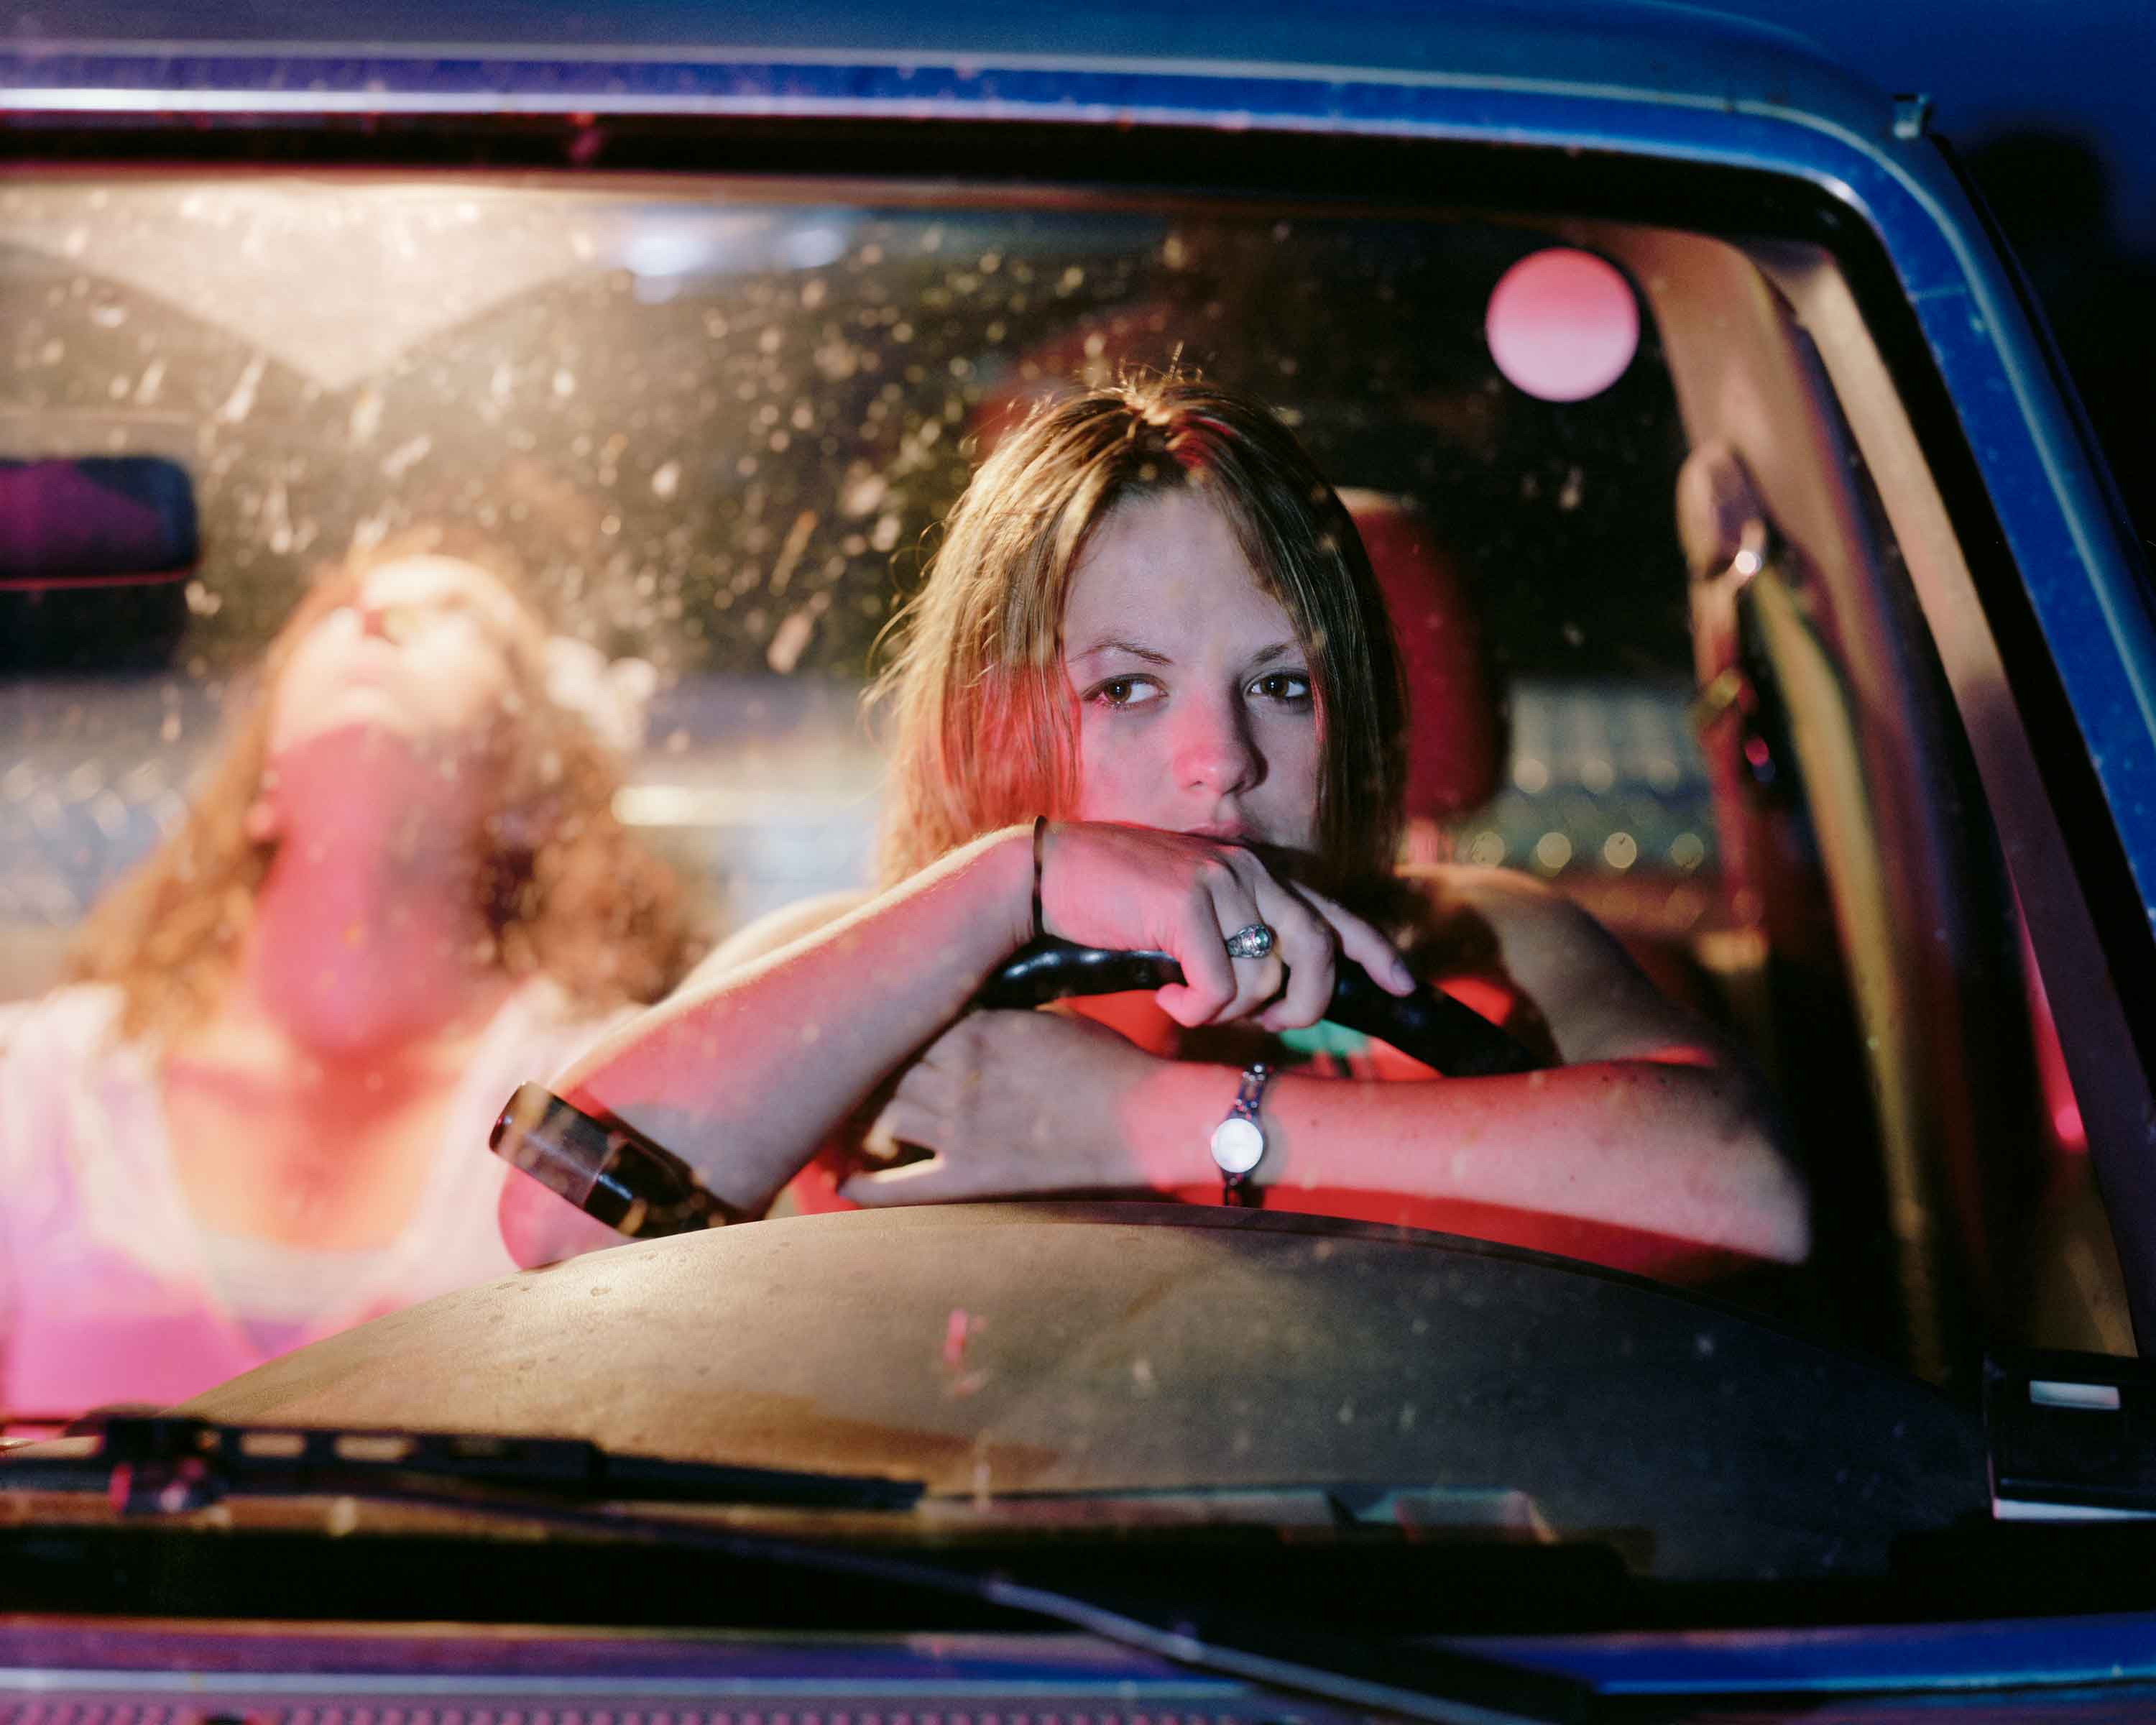 "Angela Strassheim, Untitled (Girls in Pick Up), 2006, archival pigment print, 30"" x 40"", (from the Pause series)"